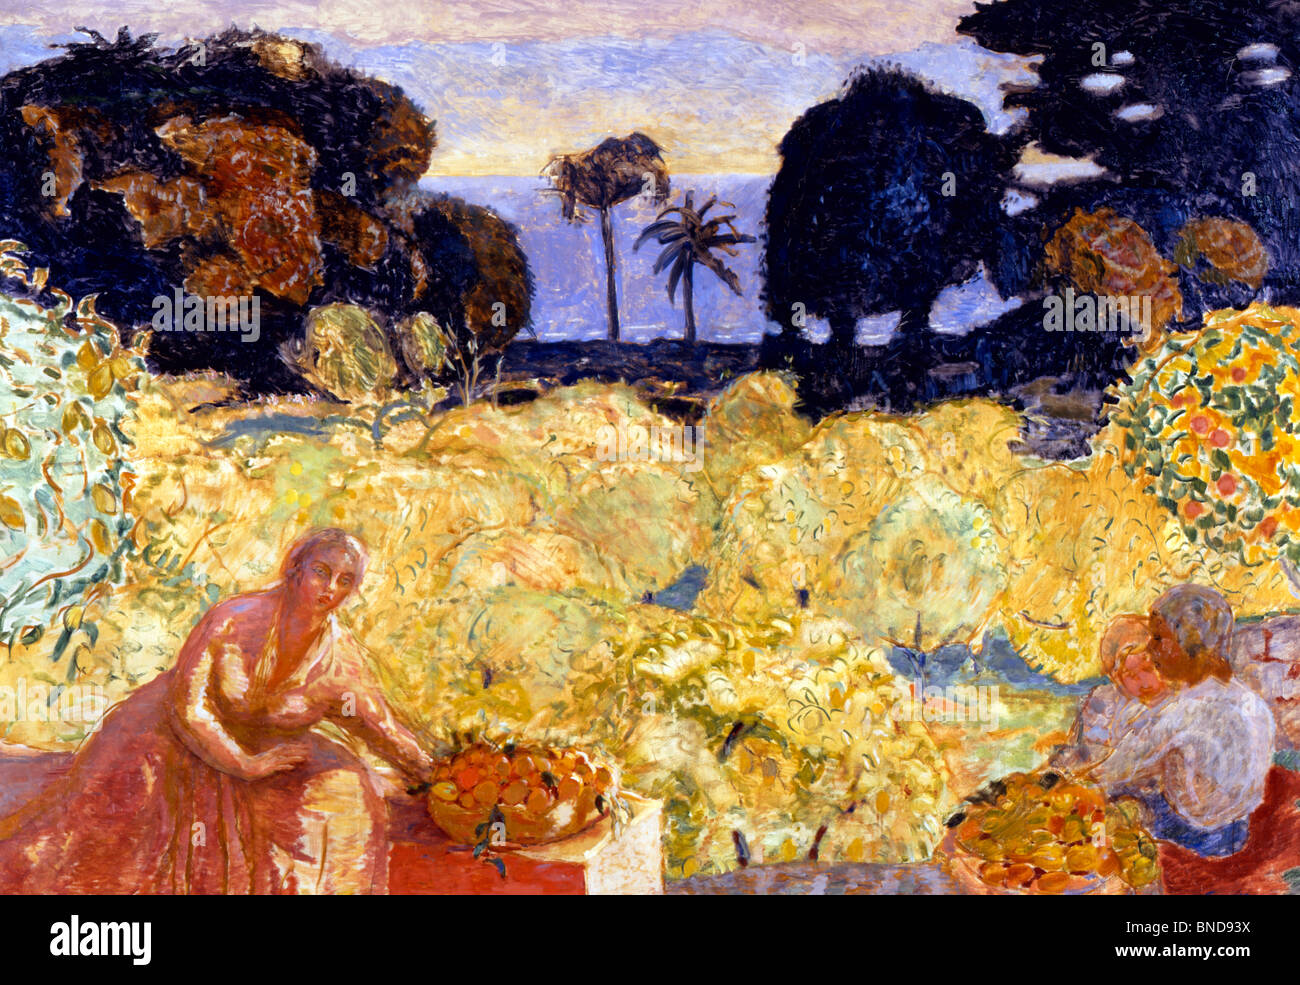 Woman And Children In Yellow Landscape by Pierre Bonnard, (1867-1947), Akram Ojjeh Collection - Stock Image